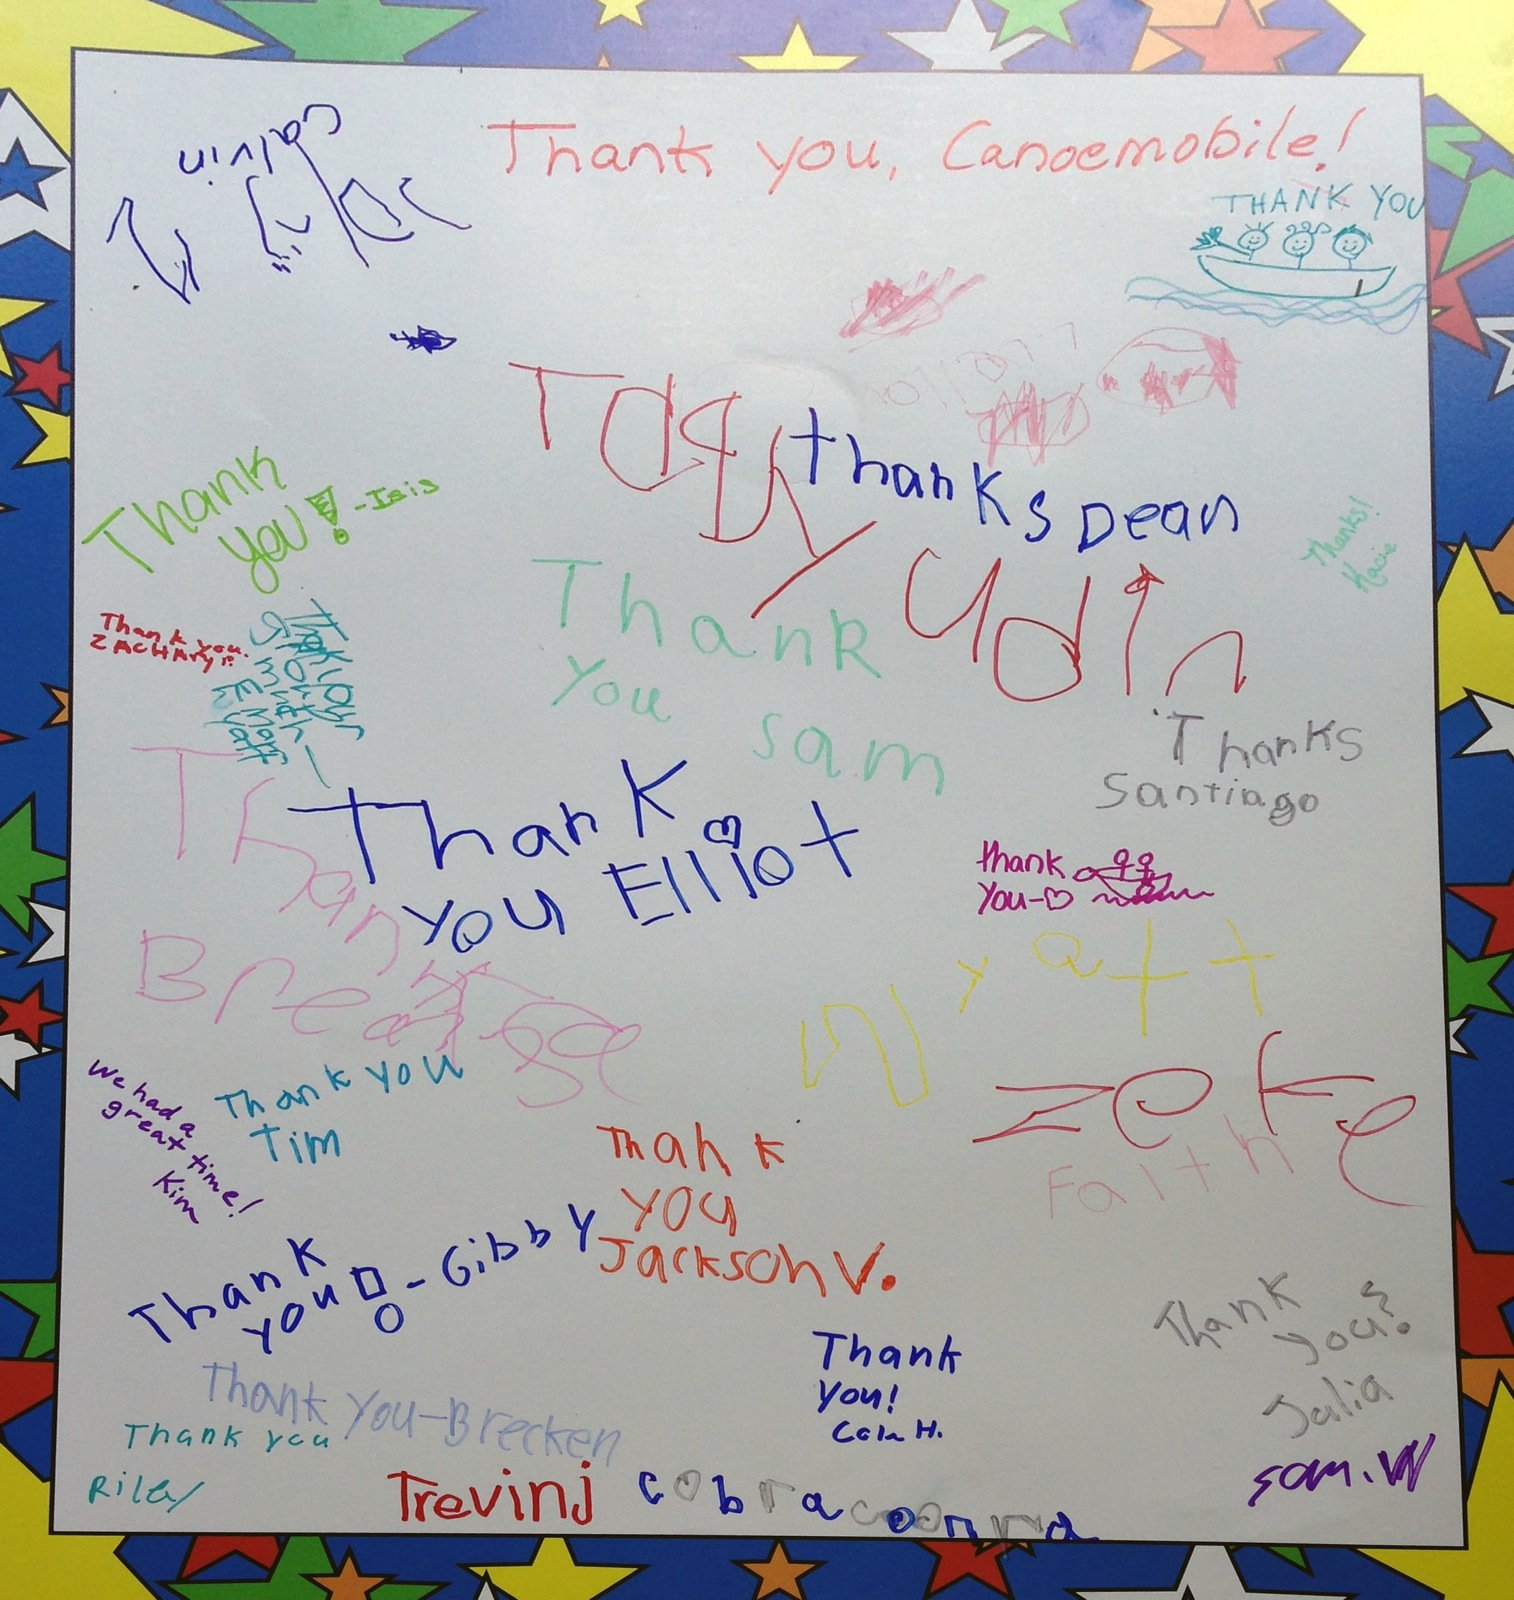 A thank you card from the students in Mankato